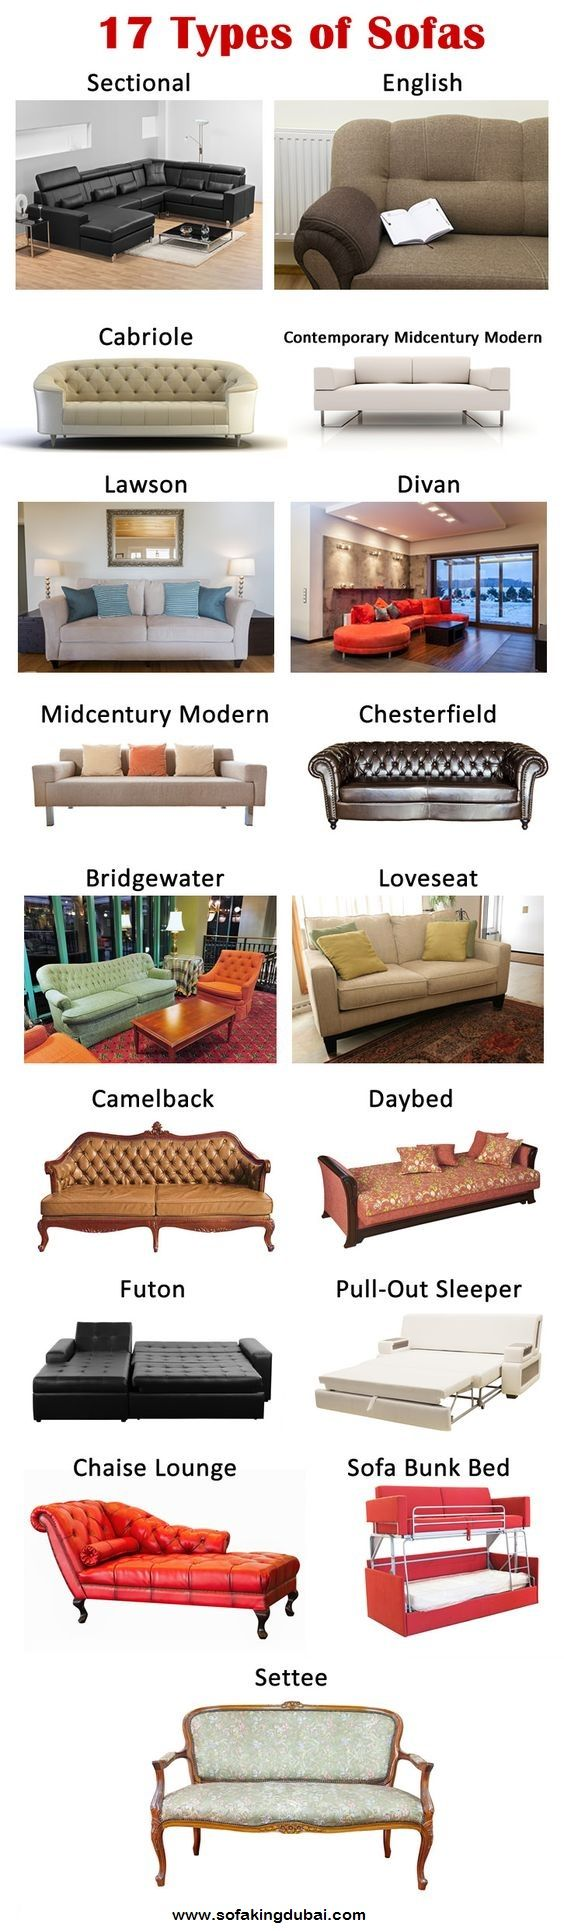 Sofa King Dubai offers the quality Sofa Upholstery services at affordable cost in Dubai. We specialize in the Reupholstery, repair, and refinishing services. http://www.sofakingdubai.com/sofa-upholstery-services